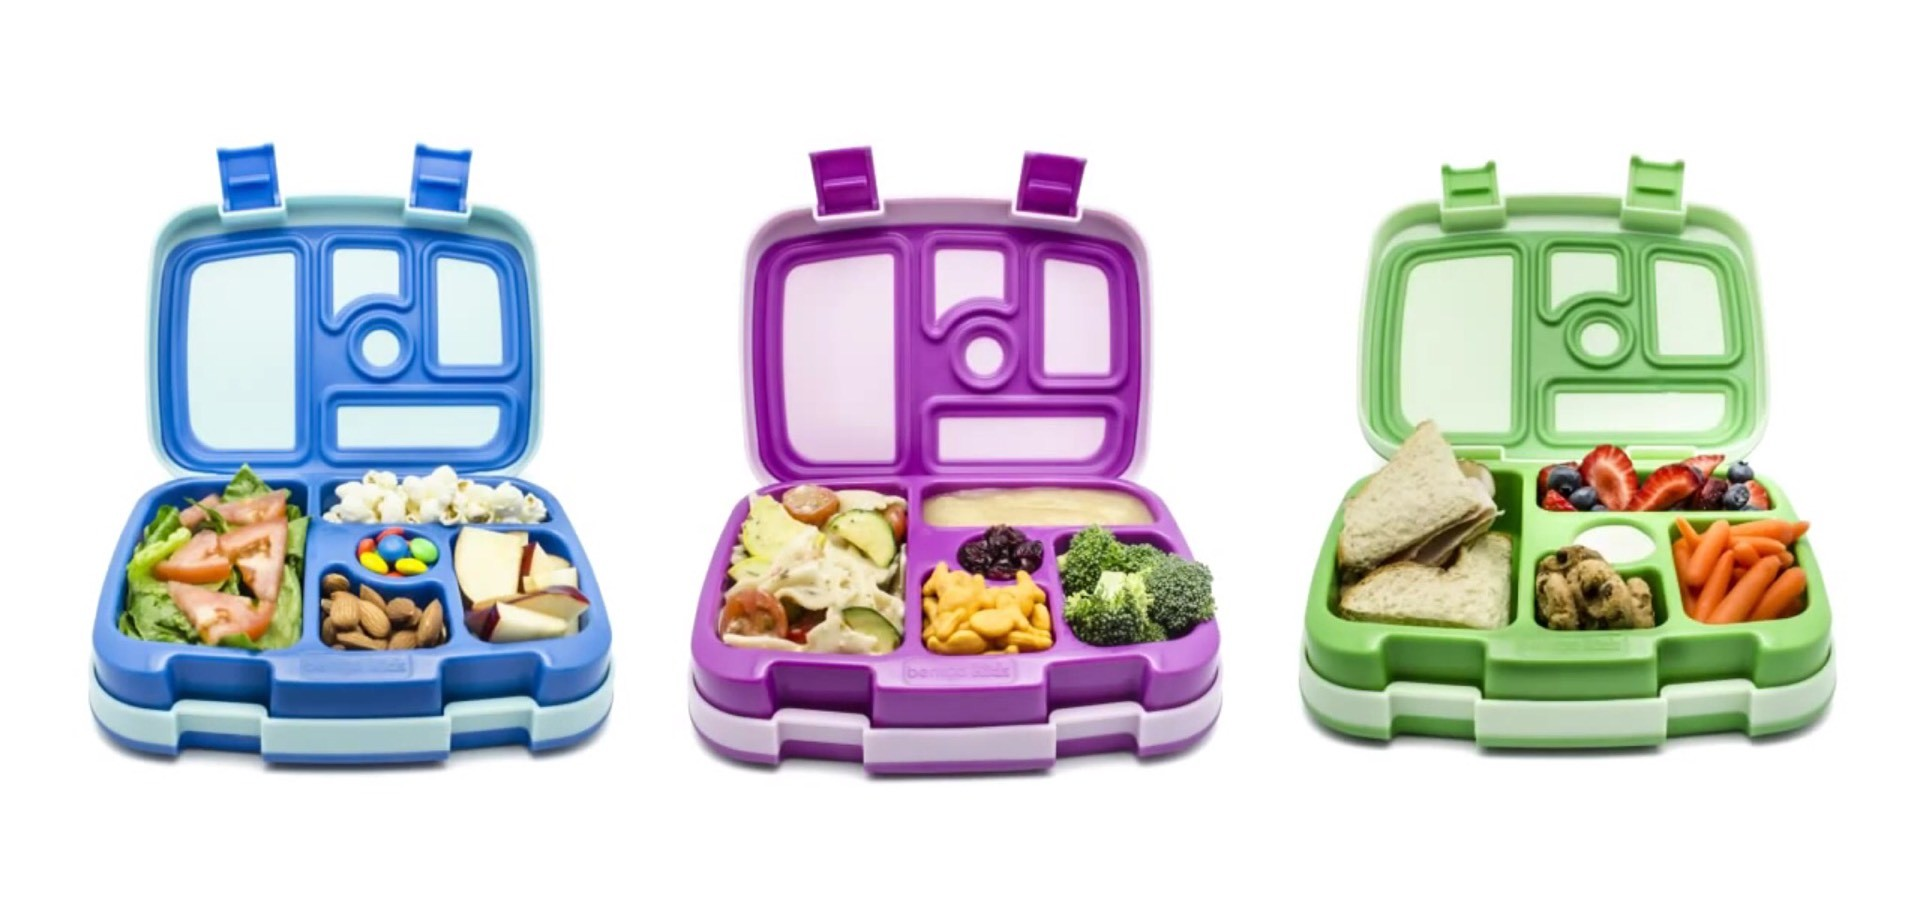 bento lunch box nz about little bento world bento lunch box mybox bento lunch box grabone nz. Black Bedroom Furniture Sets. Home Design Ideas